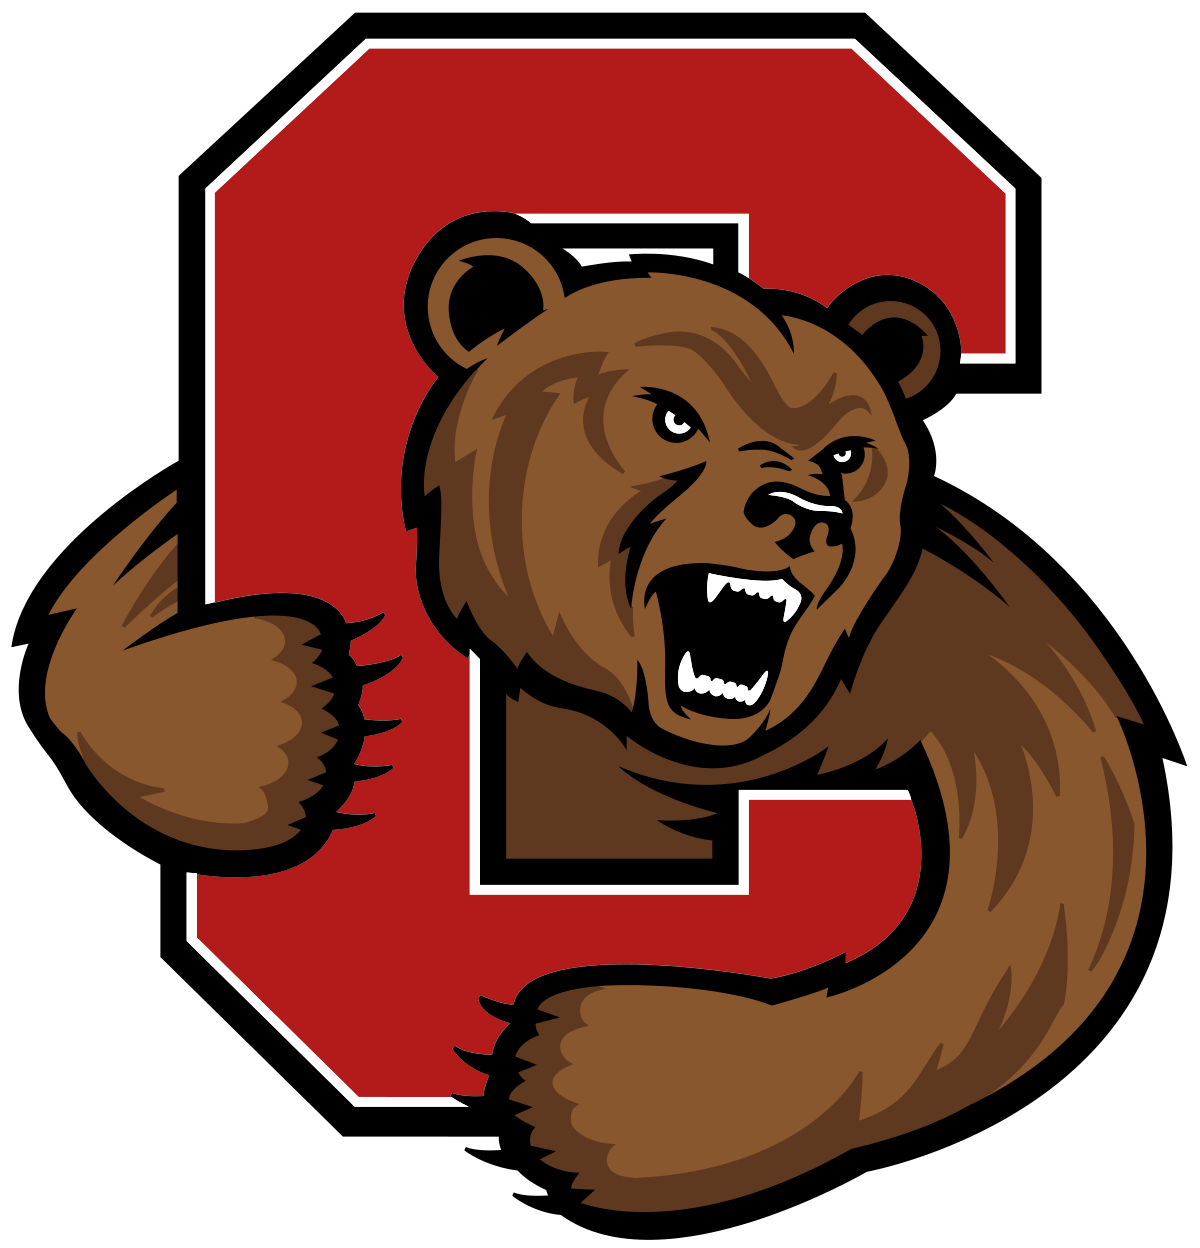 Husky svg george brown. Cornell big red wikipedia